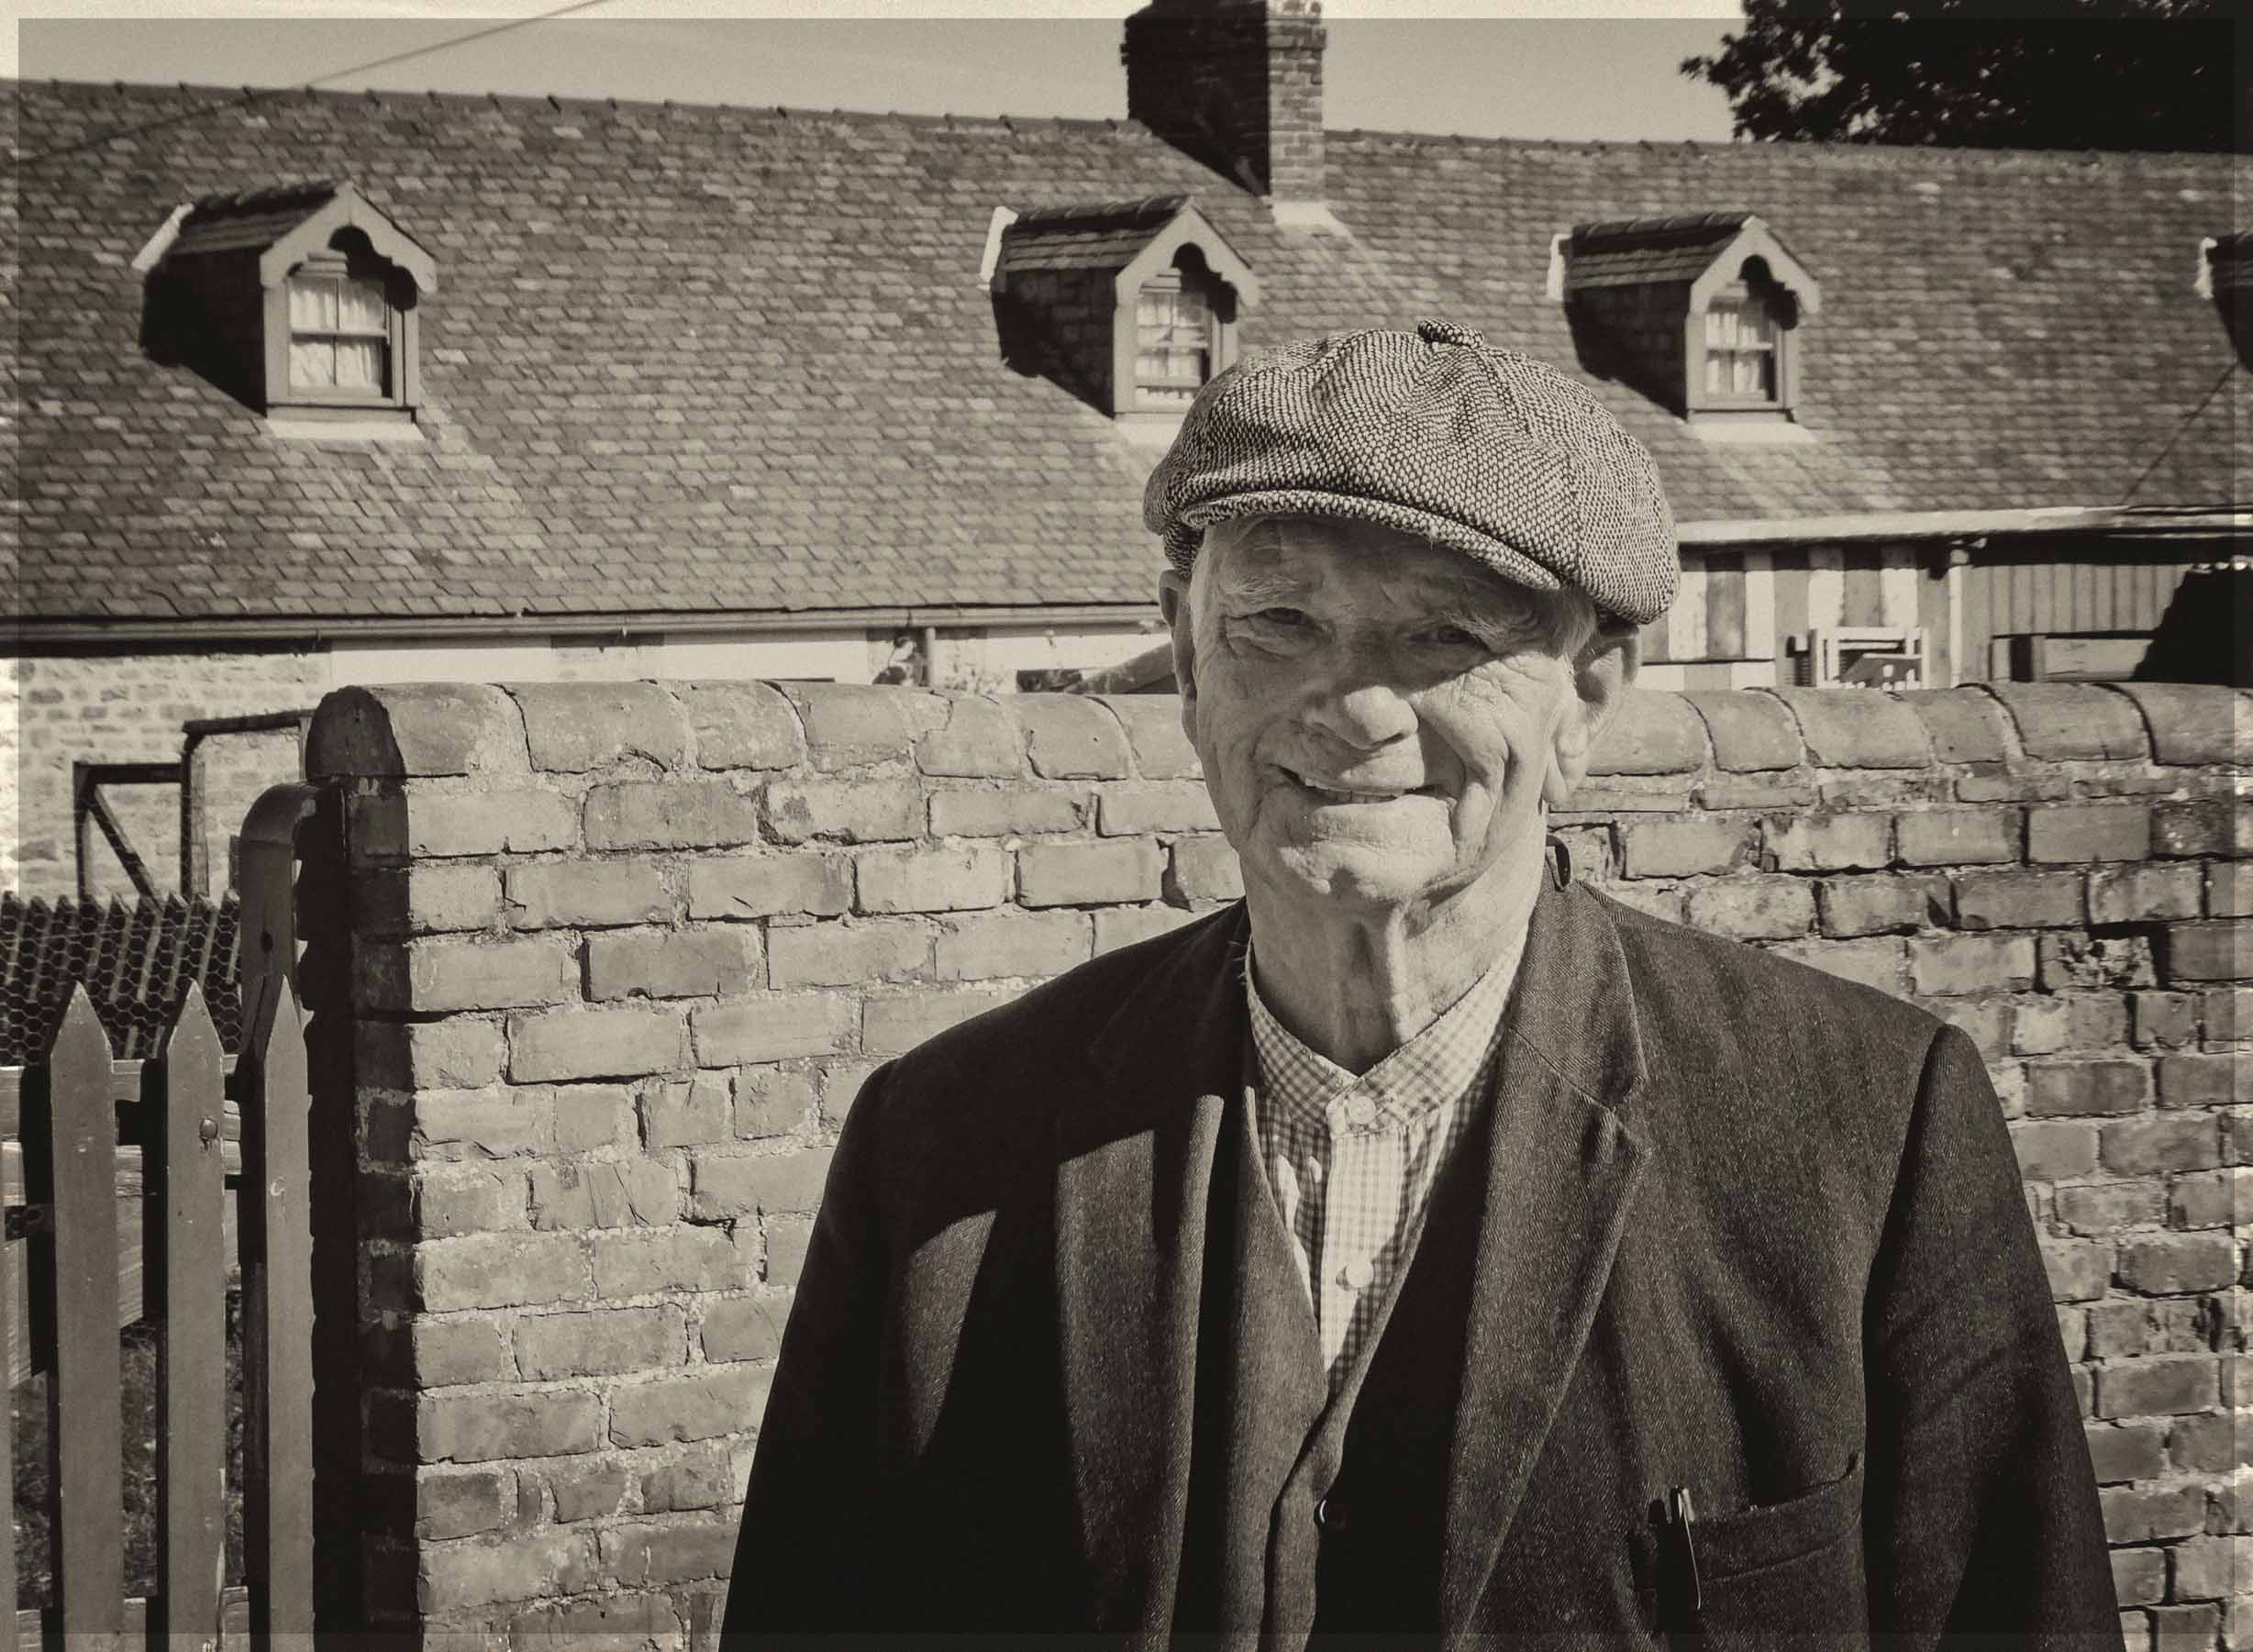 Sepia photof of a man in cloth cap in front of row of cottages